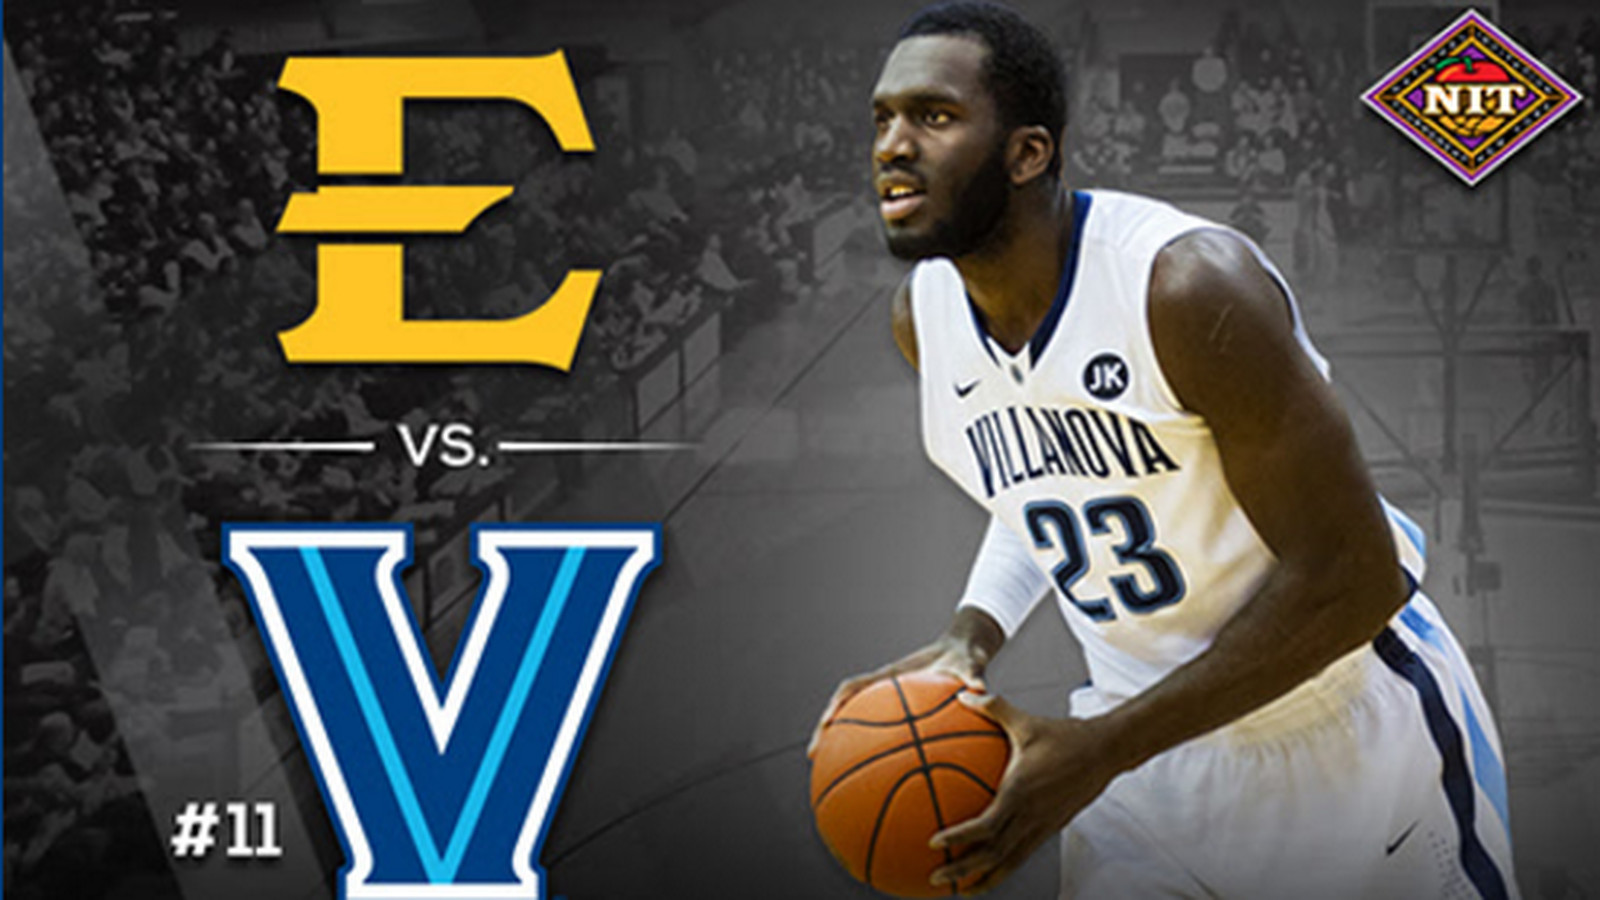 Villanova vs. East Tennessee State basketball tickets ...